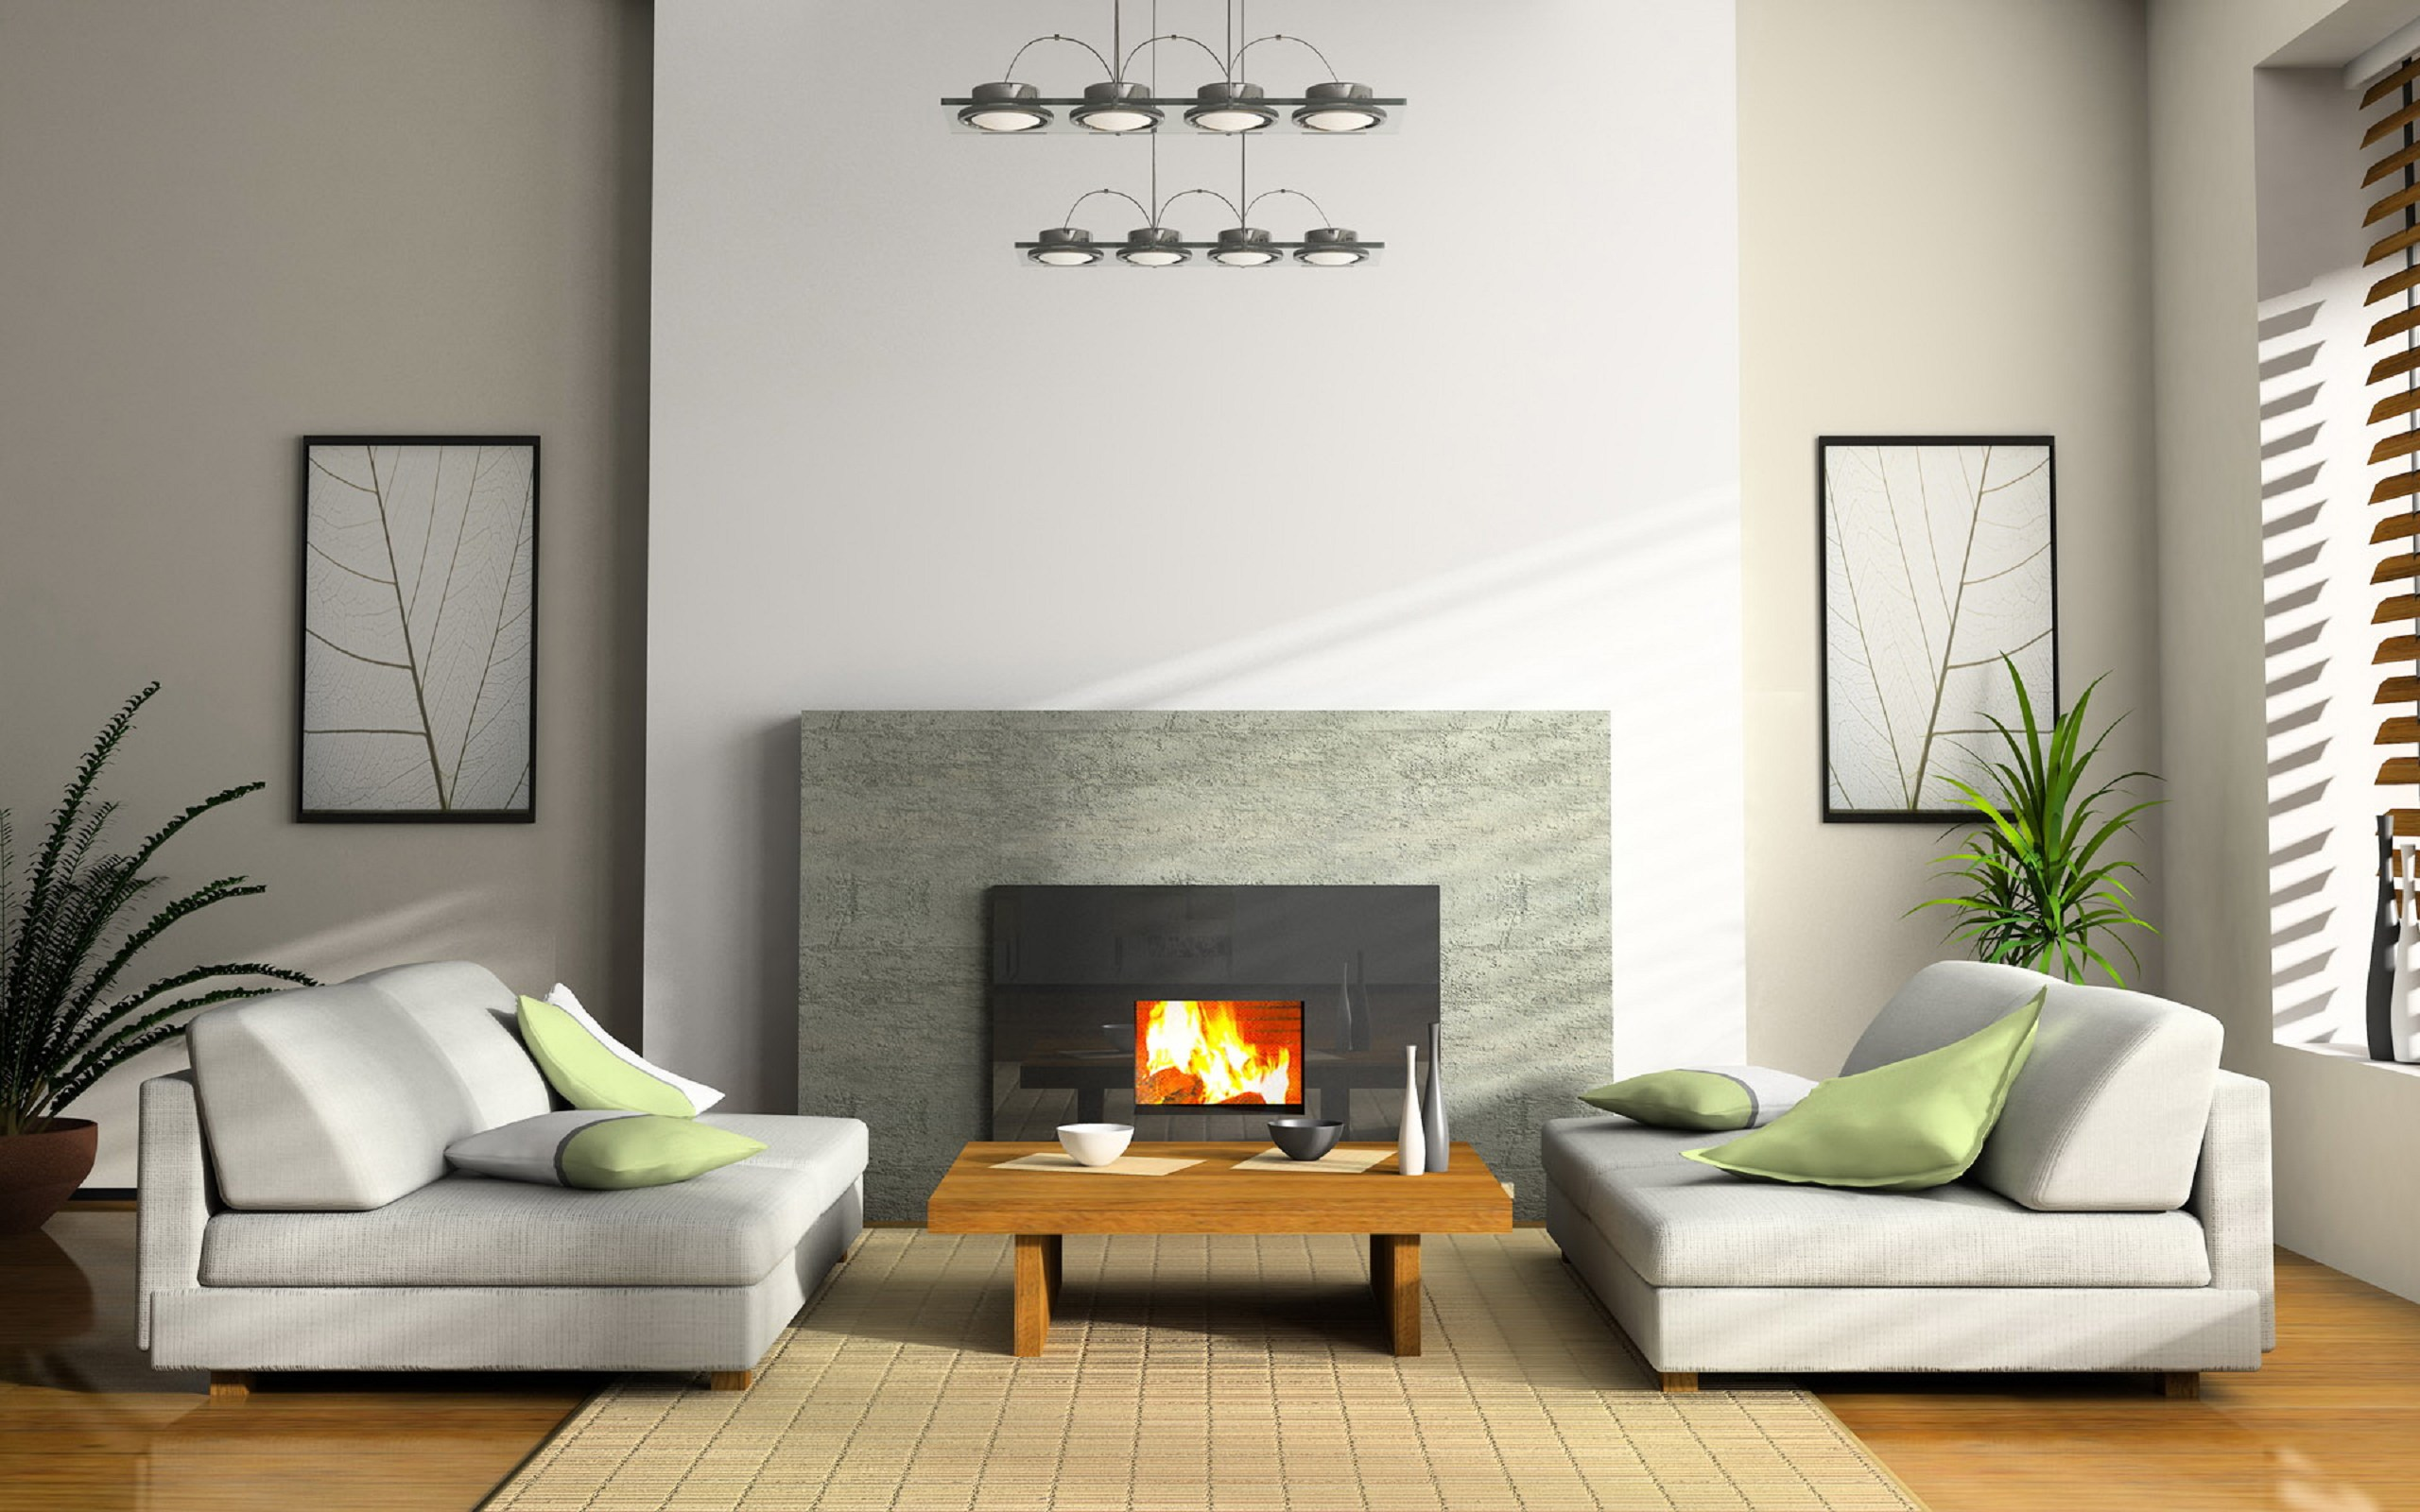 ... Home Design Wallpaper On Wall Design Ideas With Marvelous Decoration Interior ...